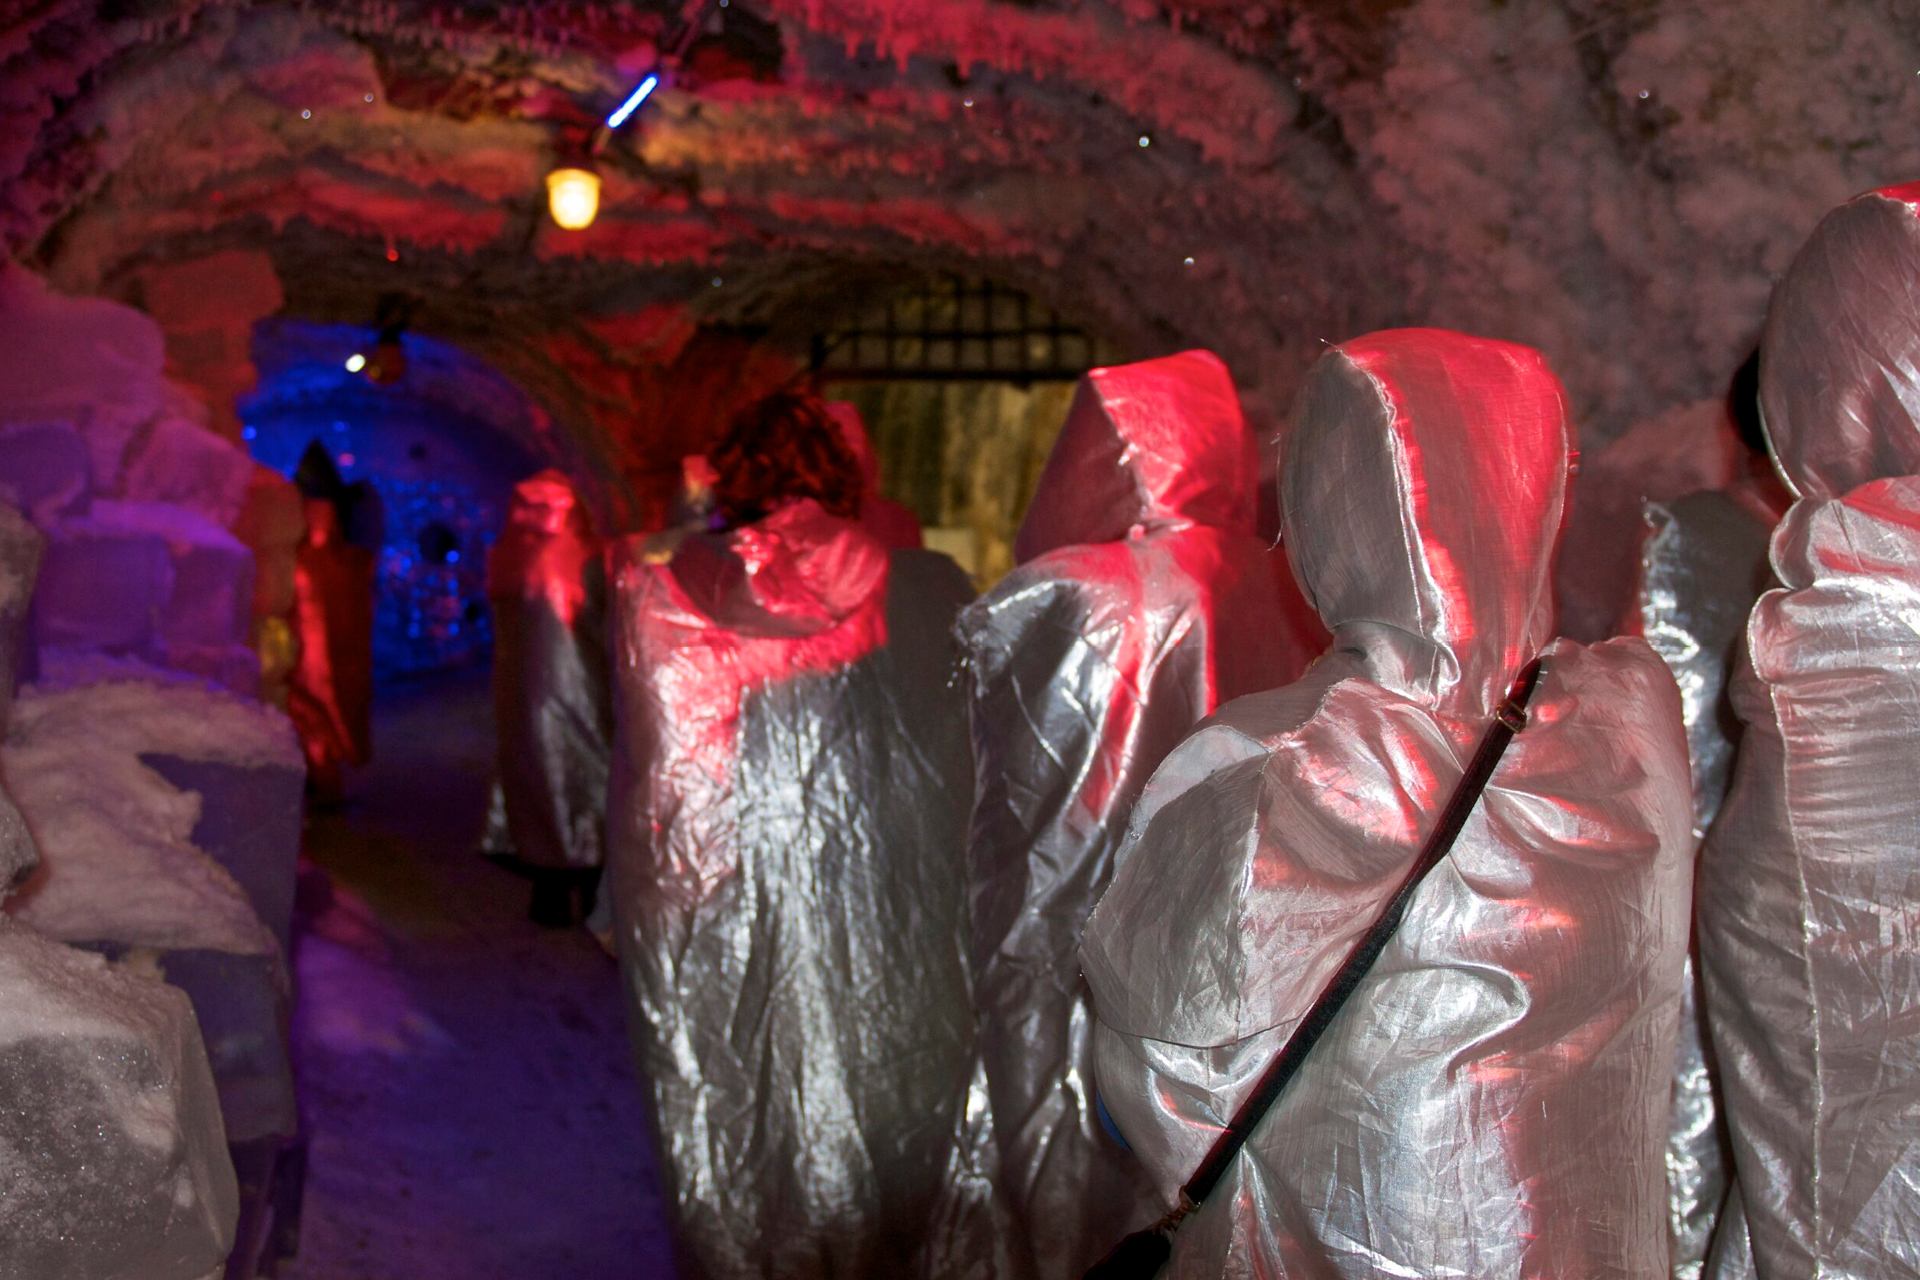 A group of people wearing silver cold protective coats inside of a natural iced cave